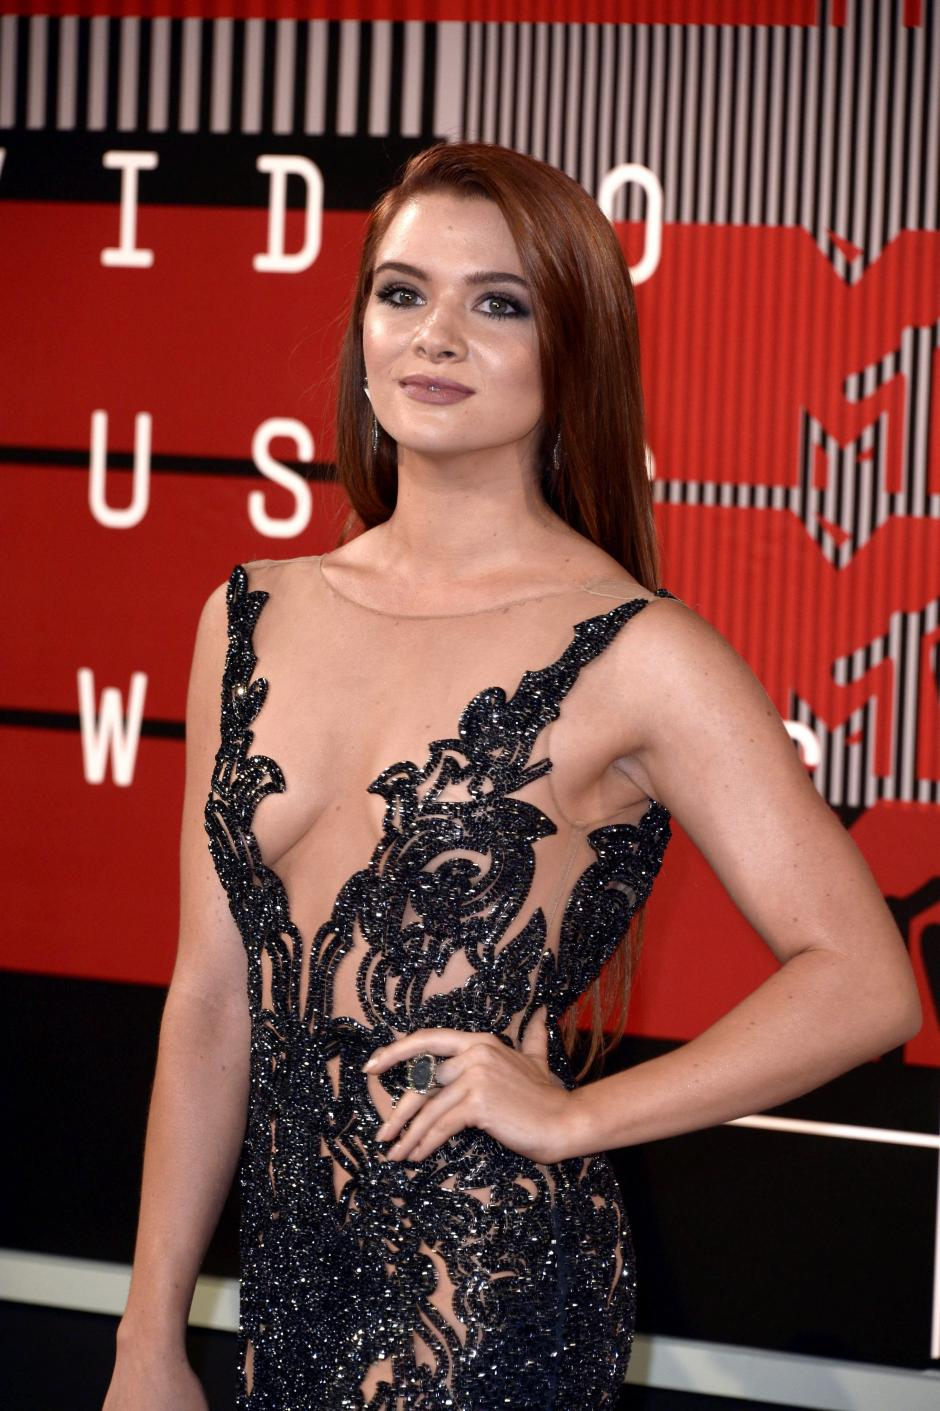 Katie Stevens desfila en la alfombra roja de la 32 MTV Video Music Awards 2015. (Foto: EFE/Paul Buck)